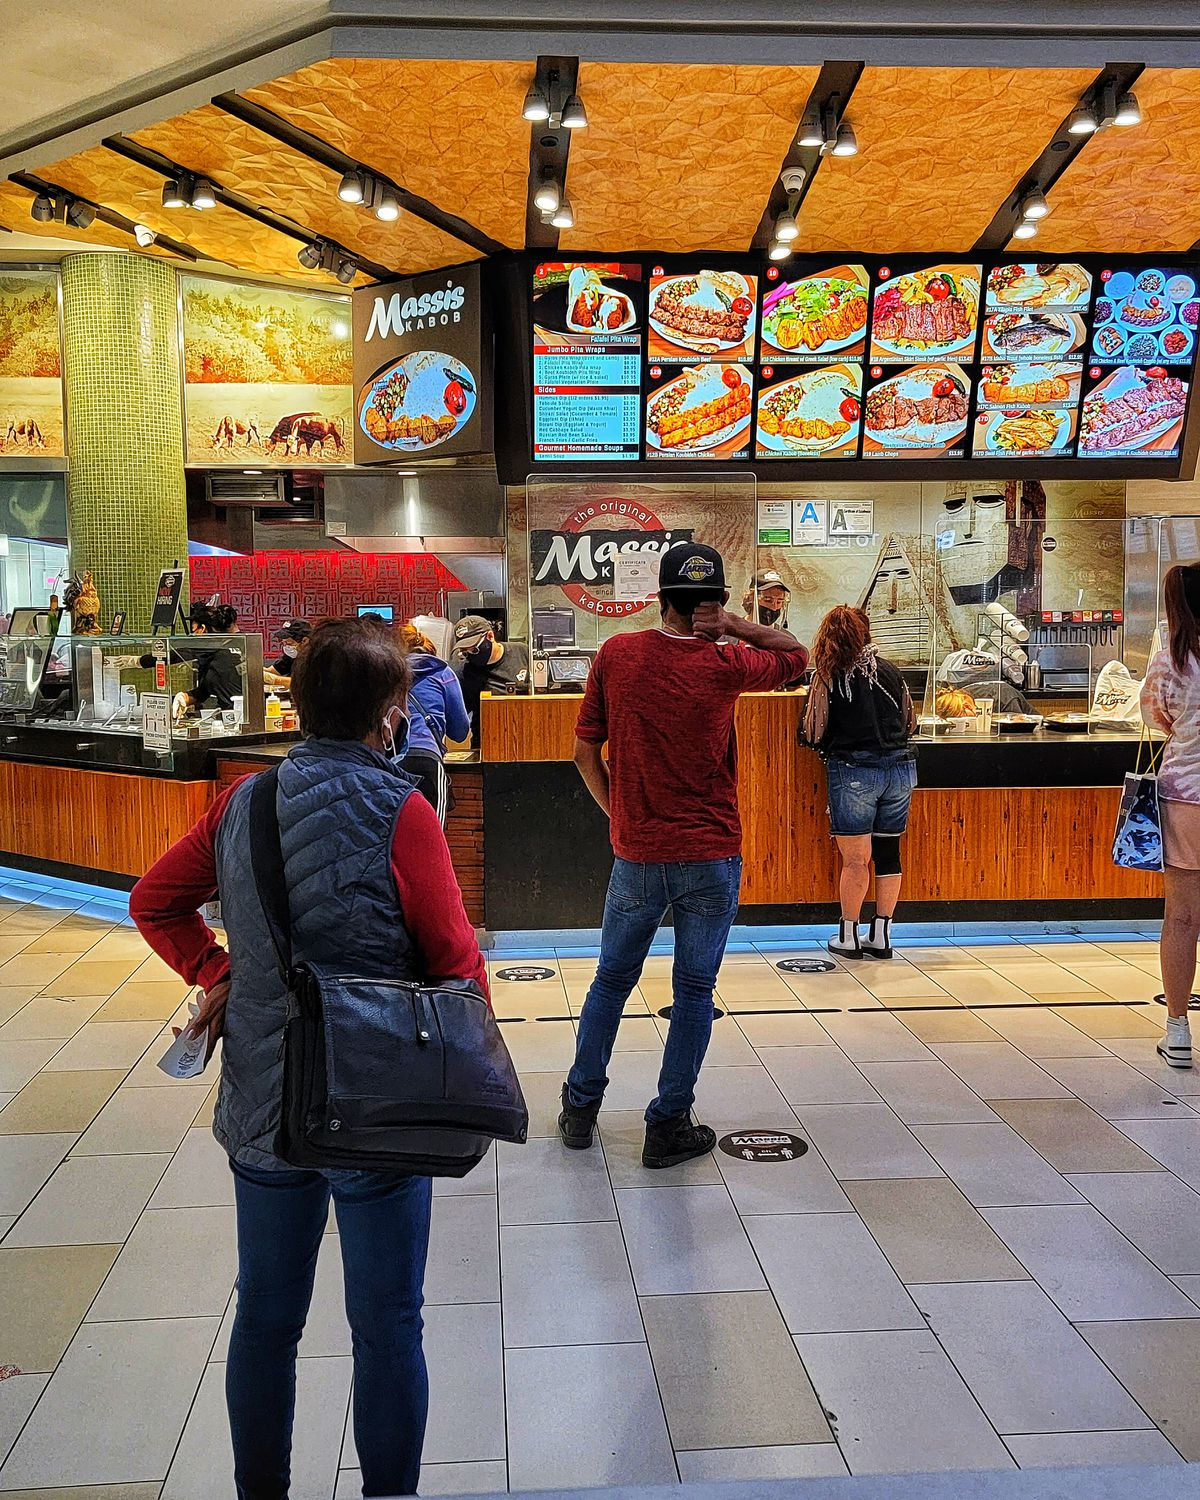 Customers wait for falafel and shawarma and skewers from a popular food court stand in a mall.